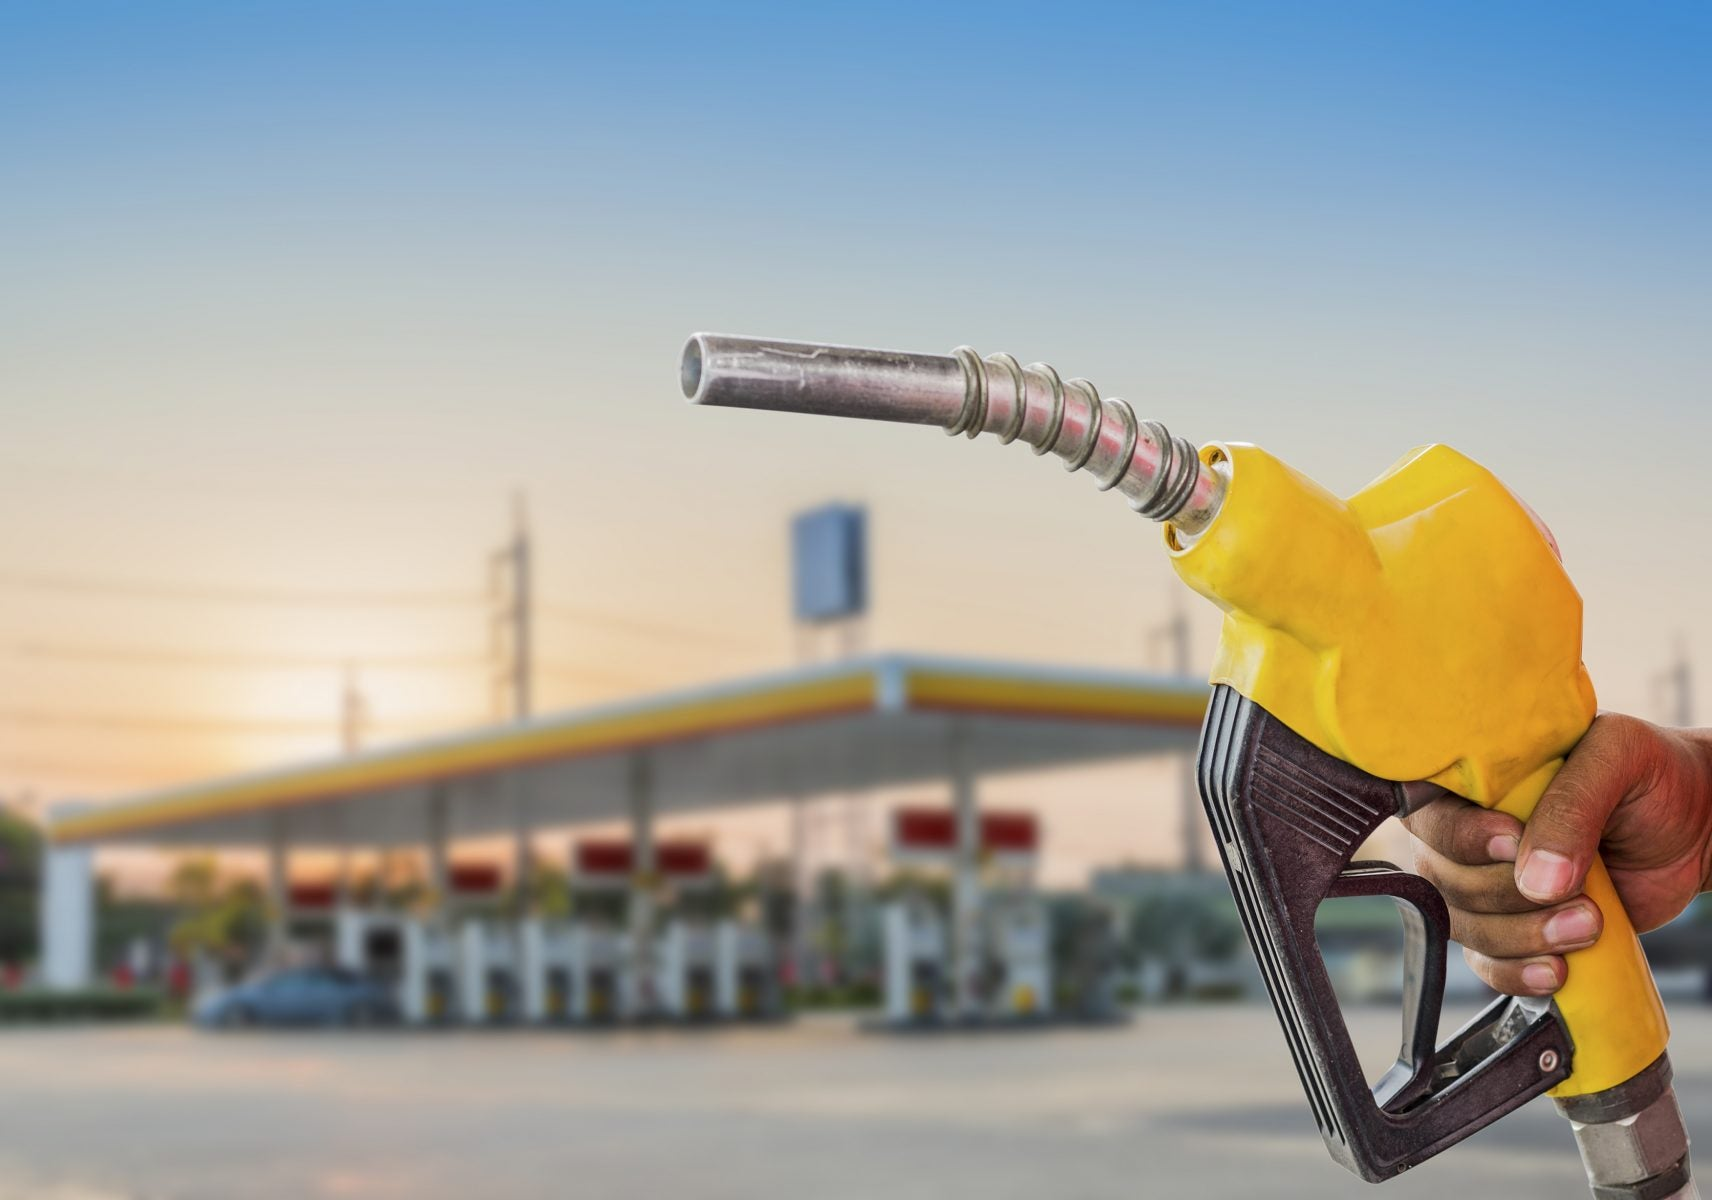 Fueling Up? Quick Guide to Finding the Best Gas Credit Card for Your Situation